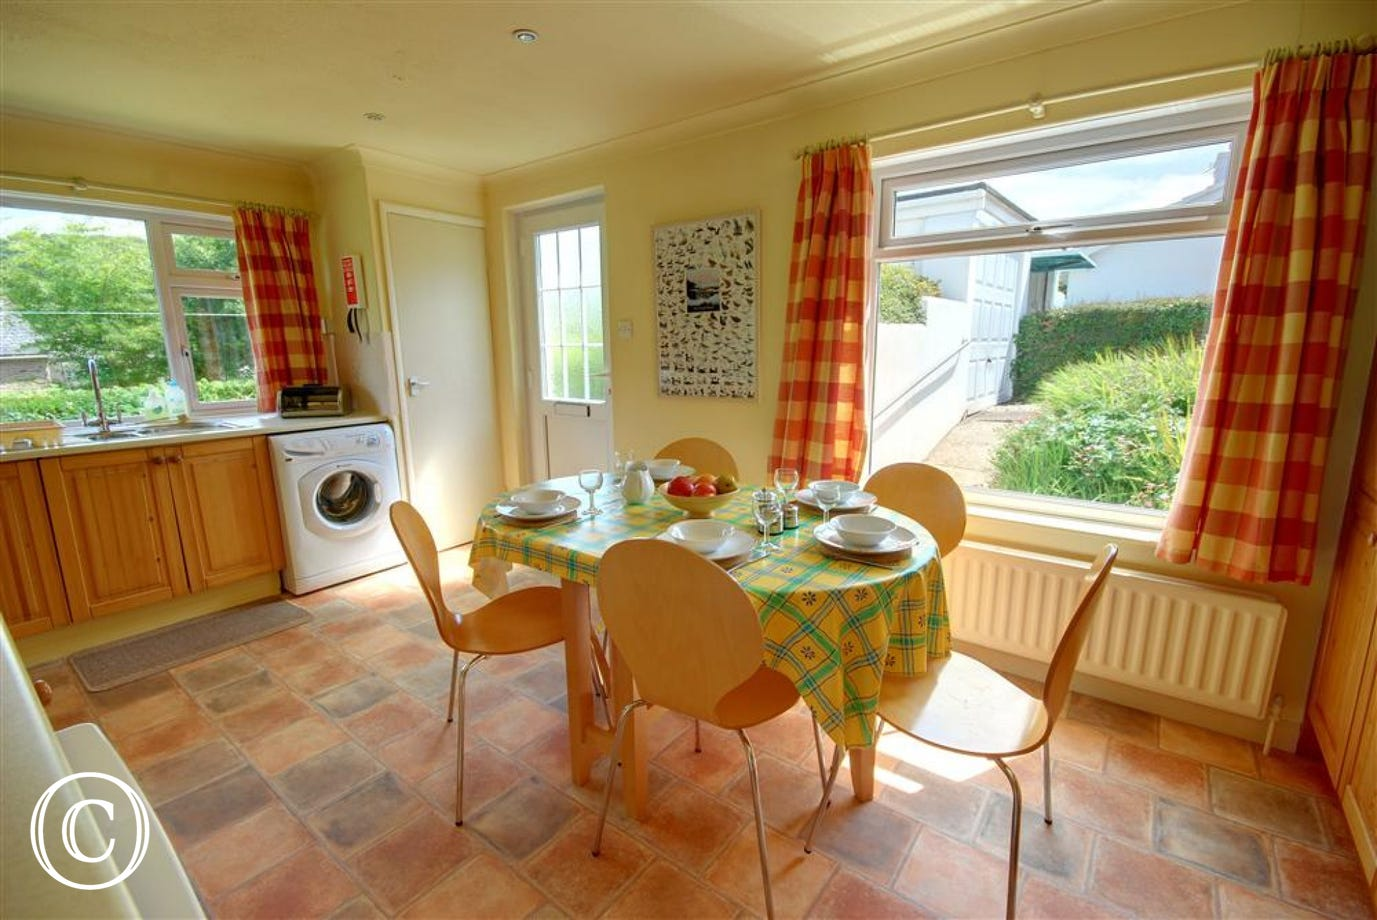 The attractive kitchen/breakfast room has a table and chairs for dining